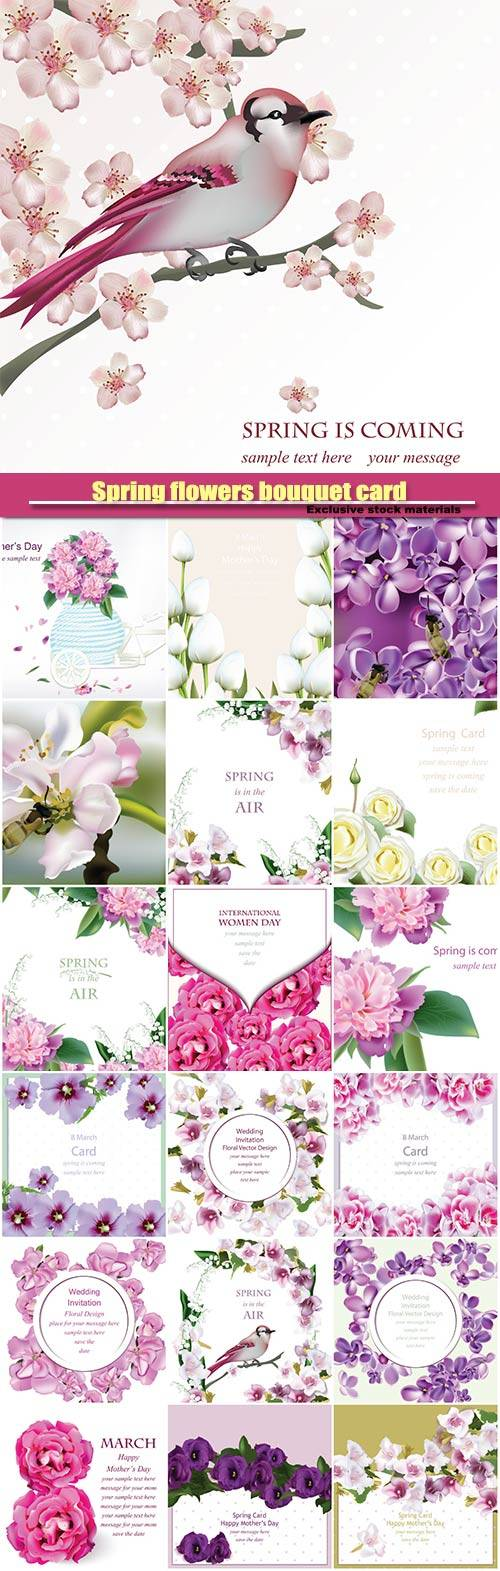 Spring flowers bouquet card background, weddings, birthday, anniversaryv ector illustration